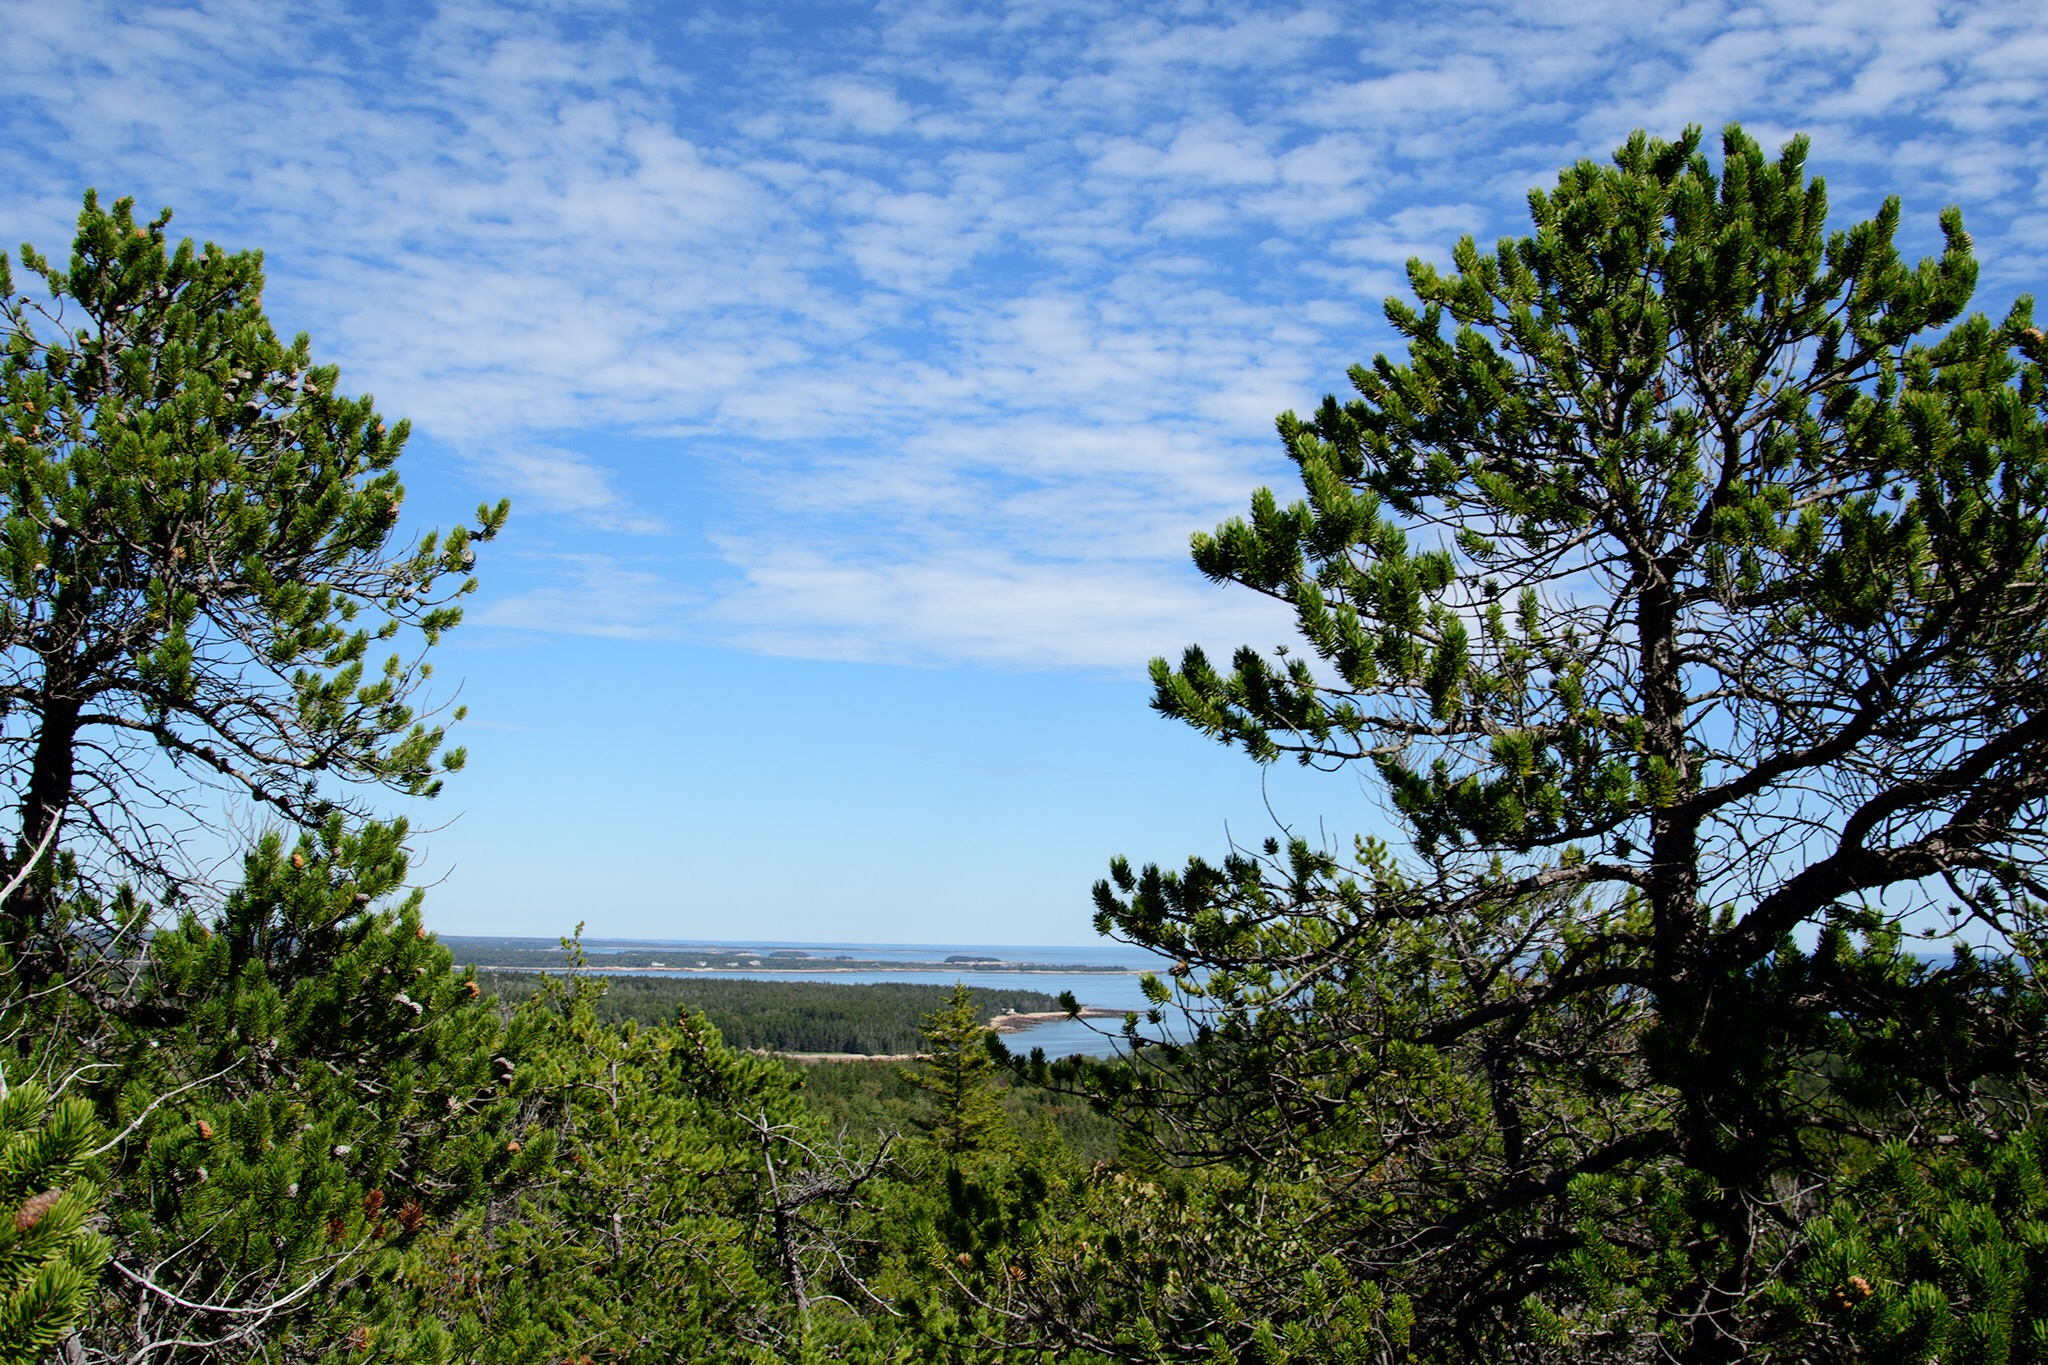 A view from the trail at the top of Birch Harbor Mountain